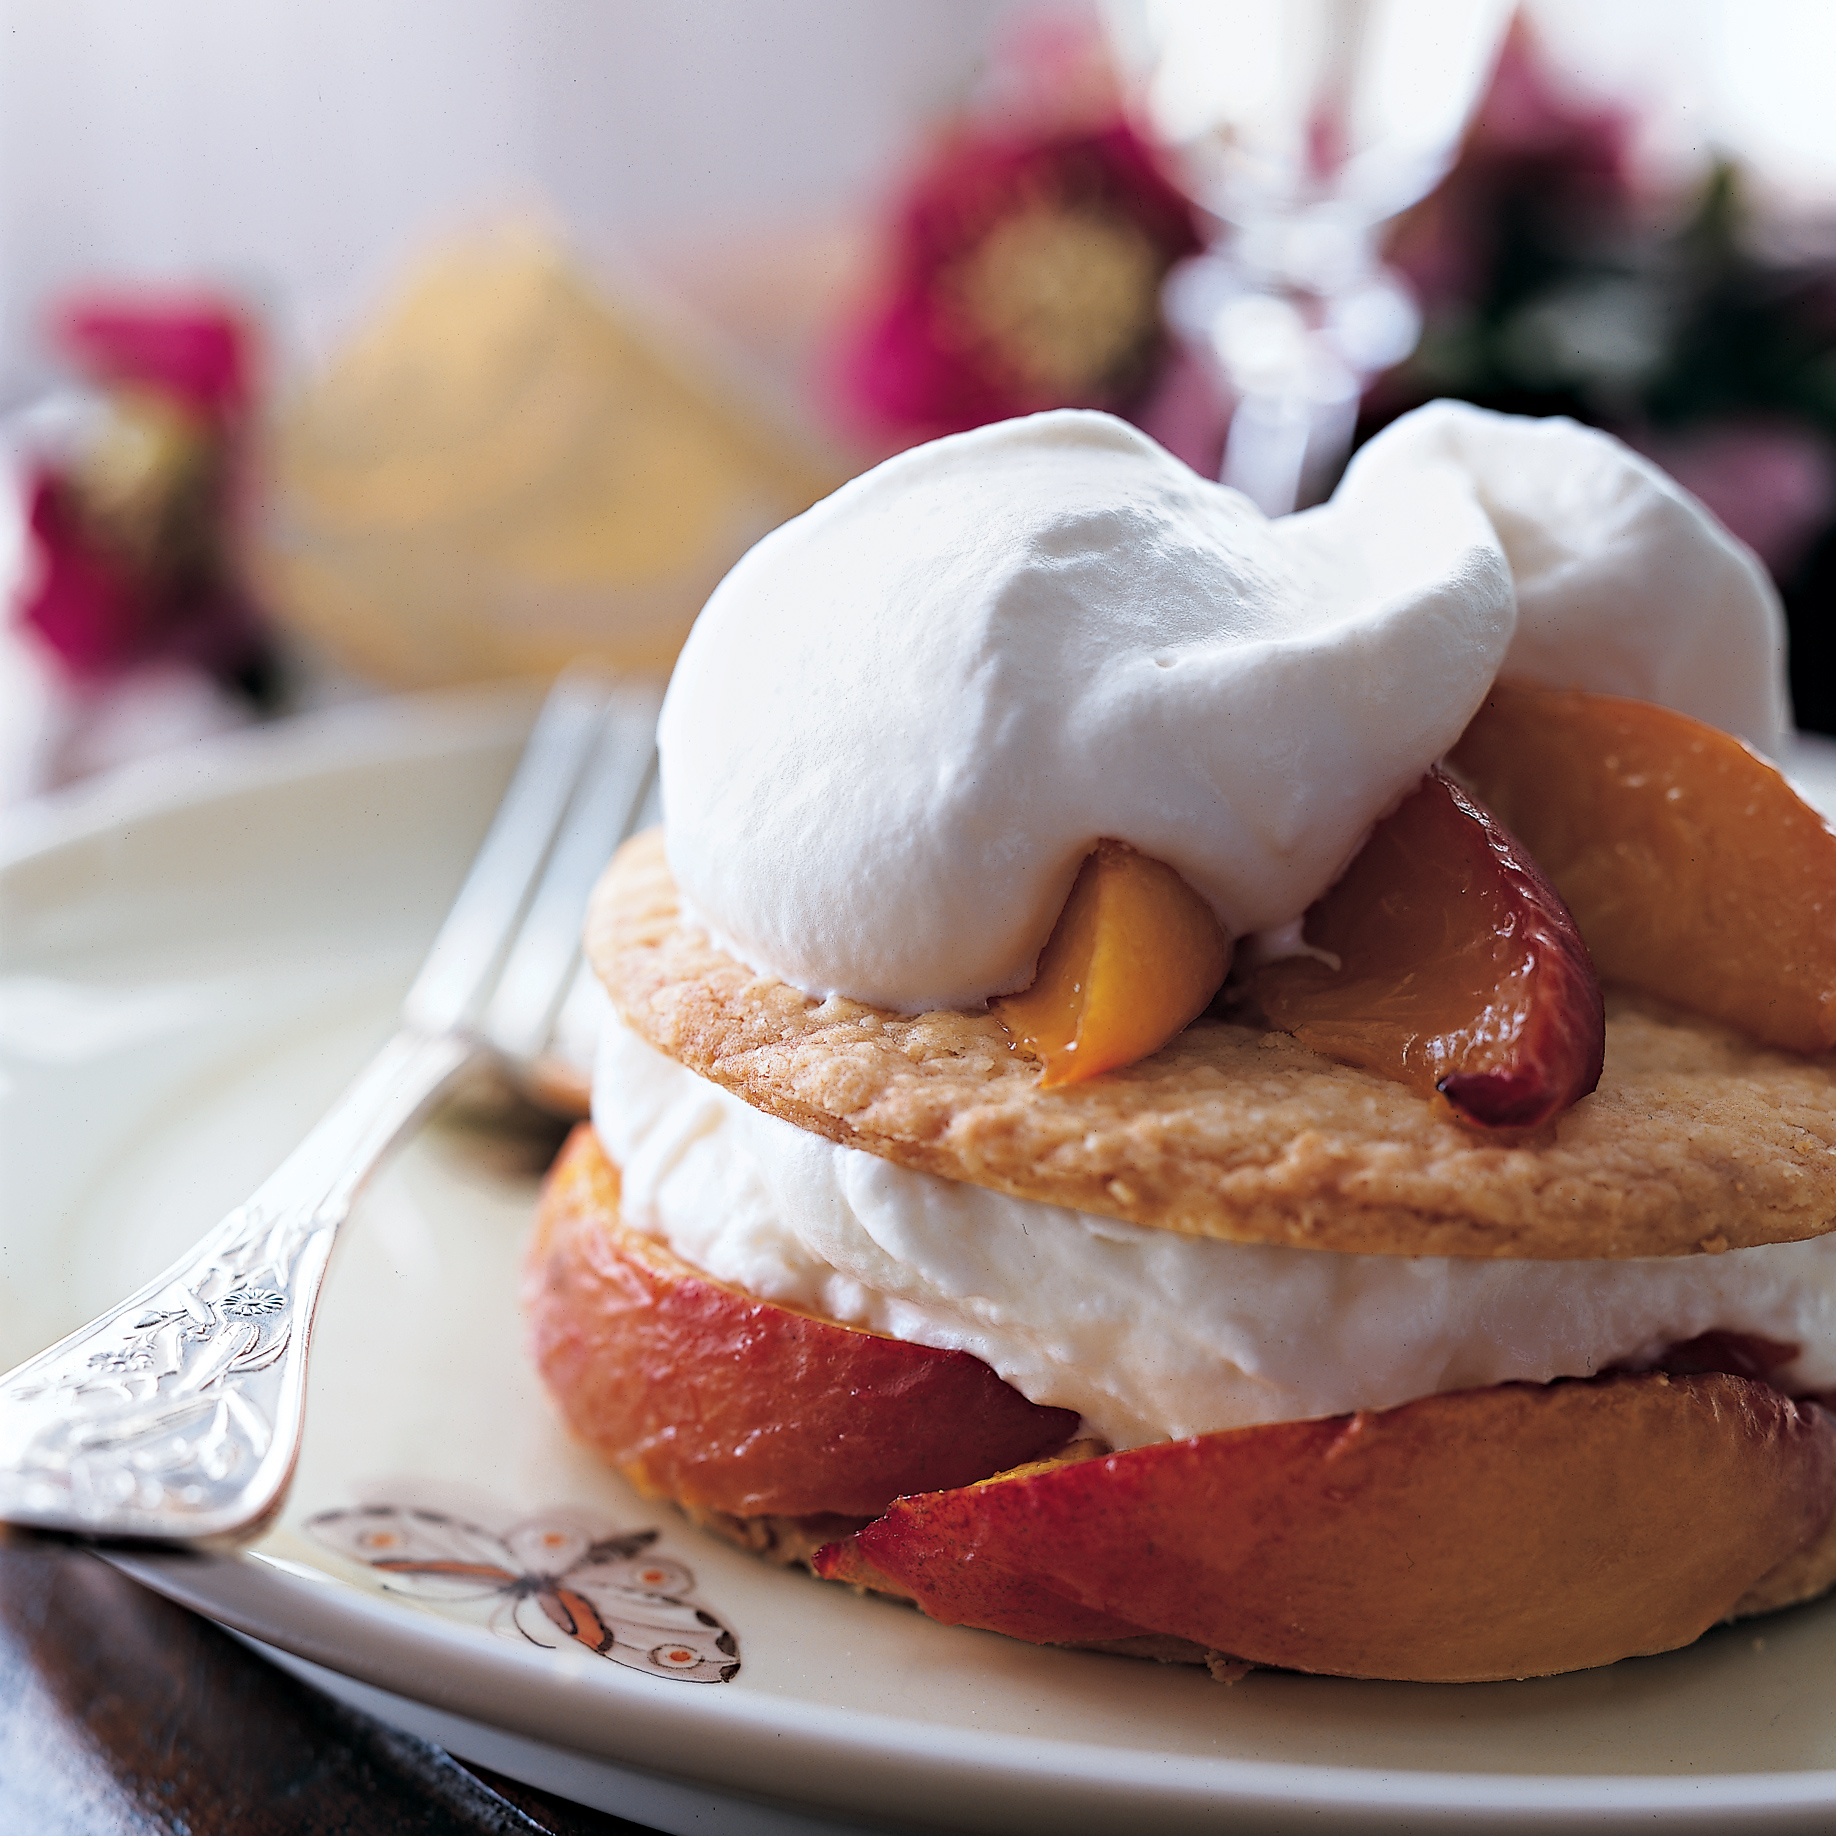 Peach Pie Recipes: Roasted Peach Pies with Cream